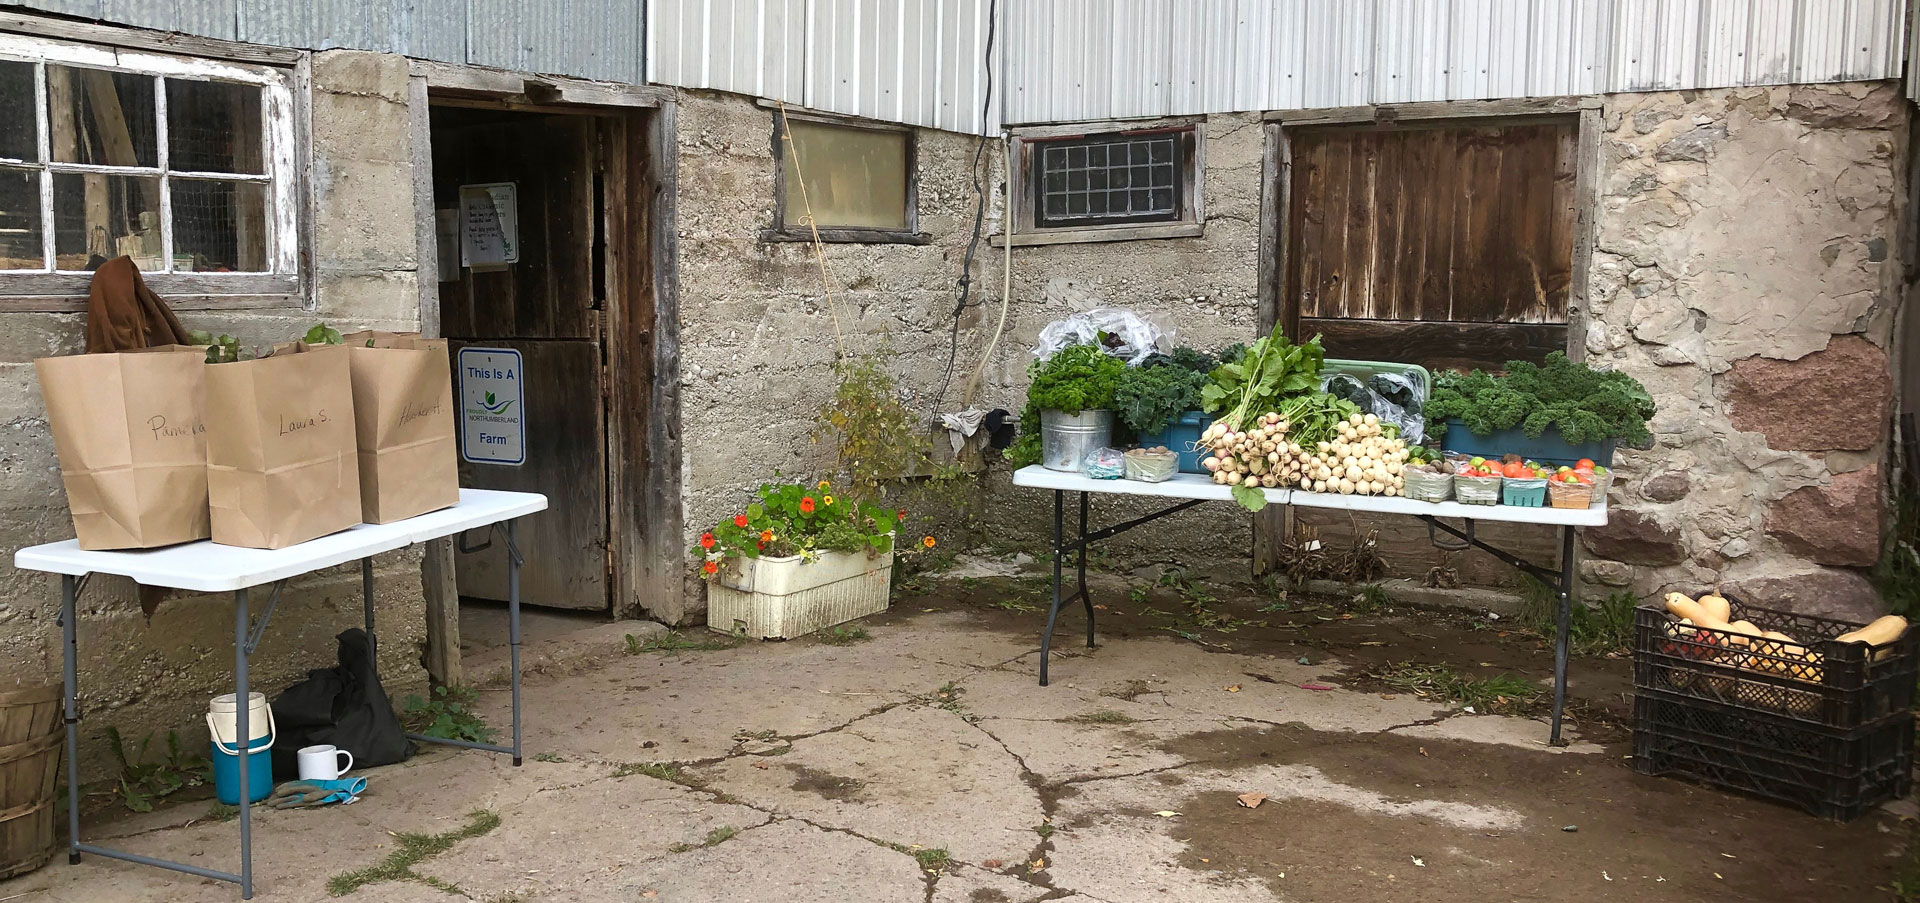 Art Farm Community Supported Agriculture